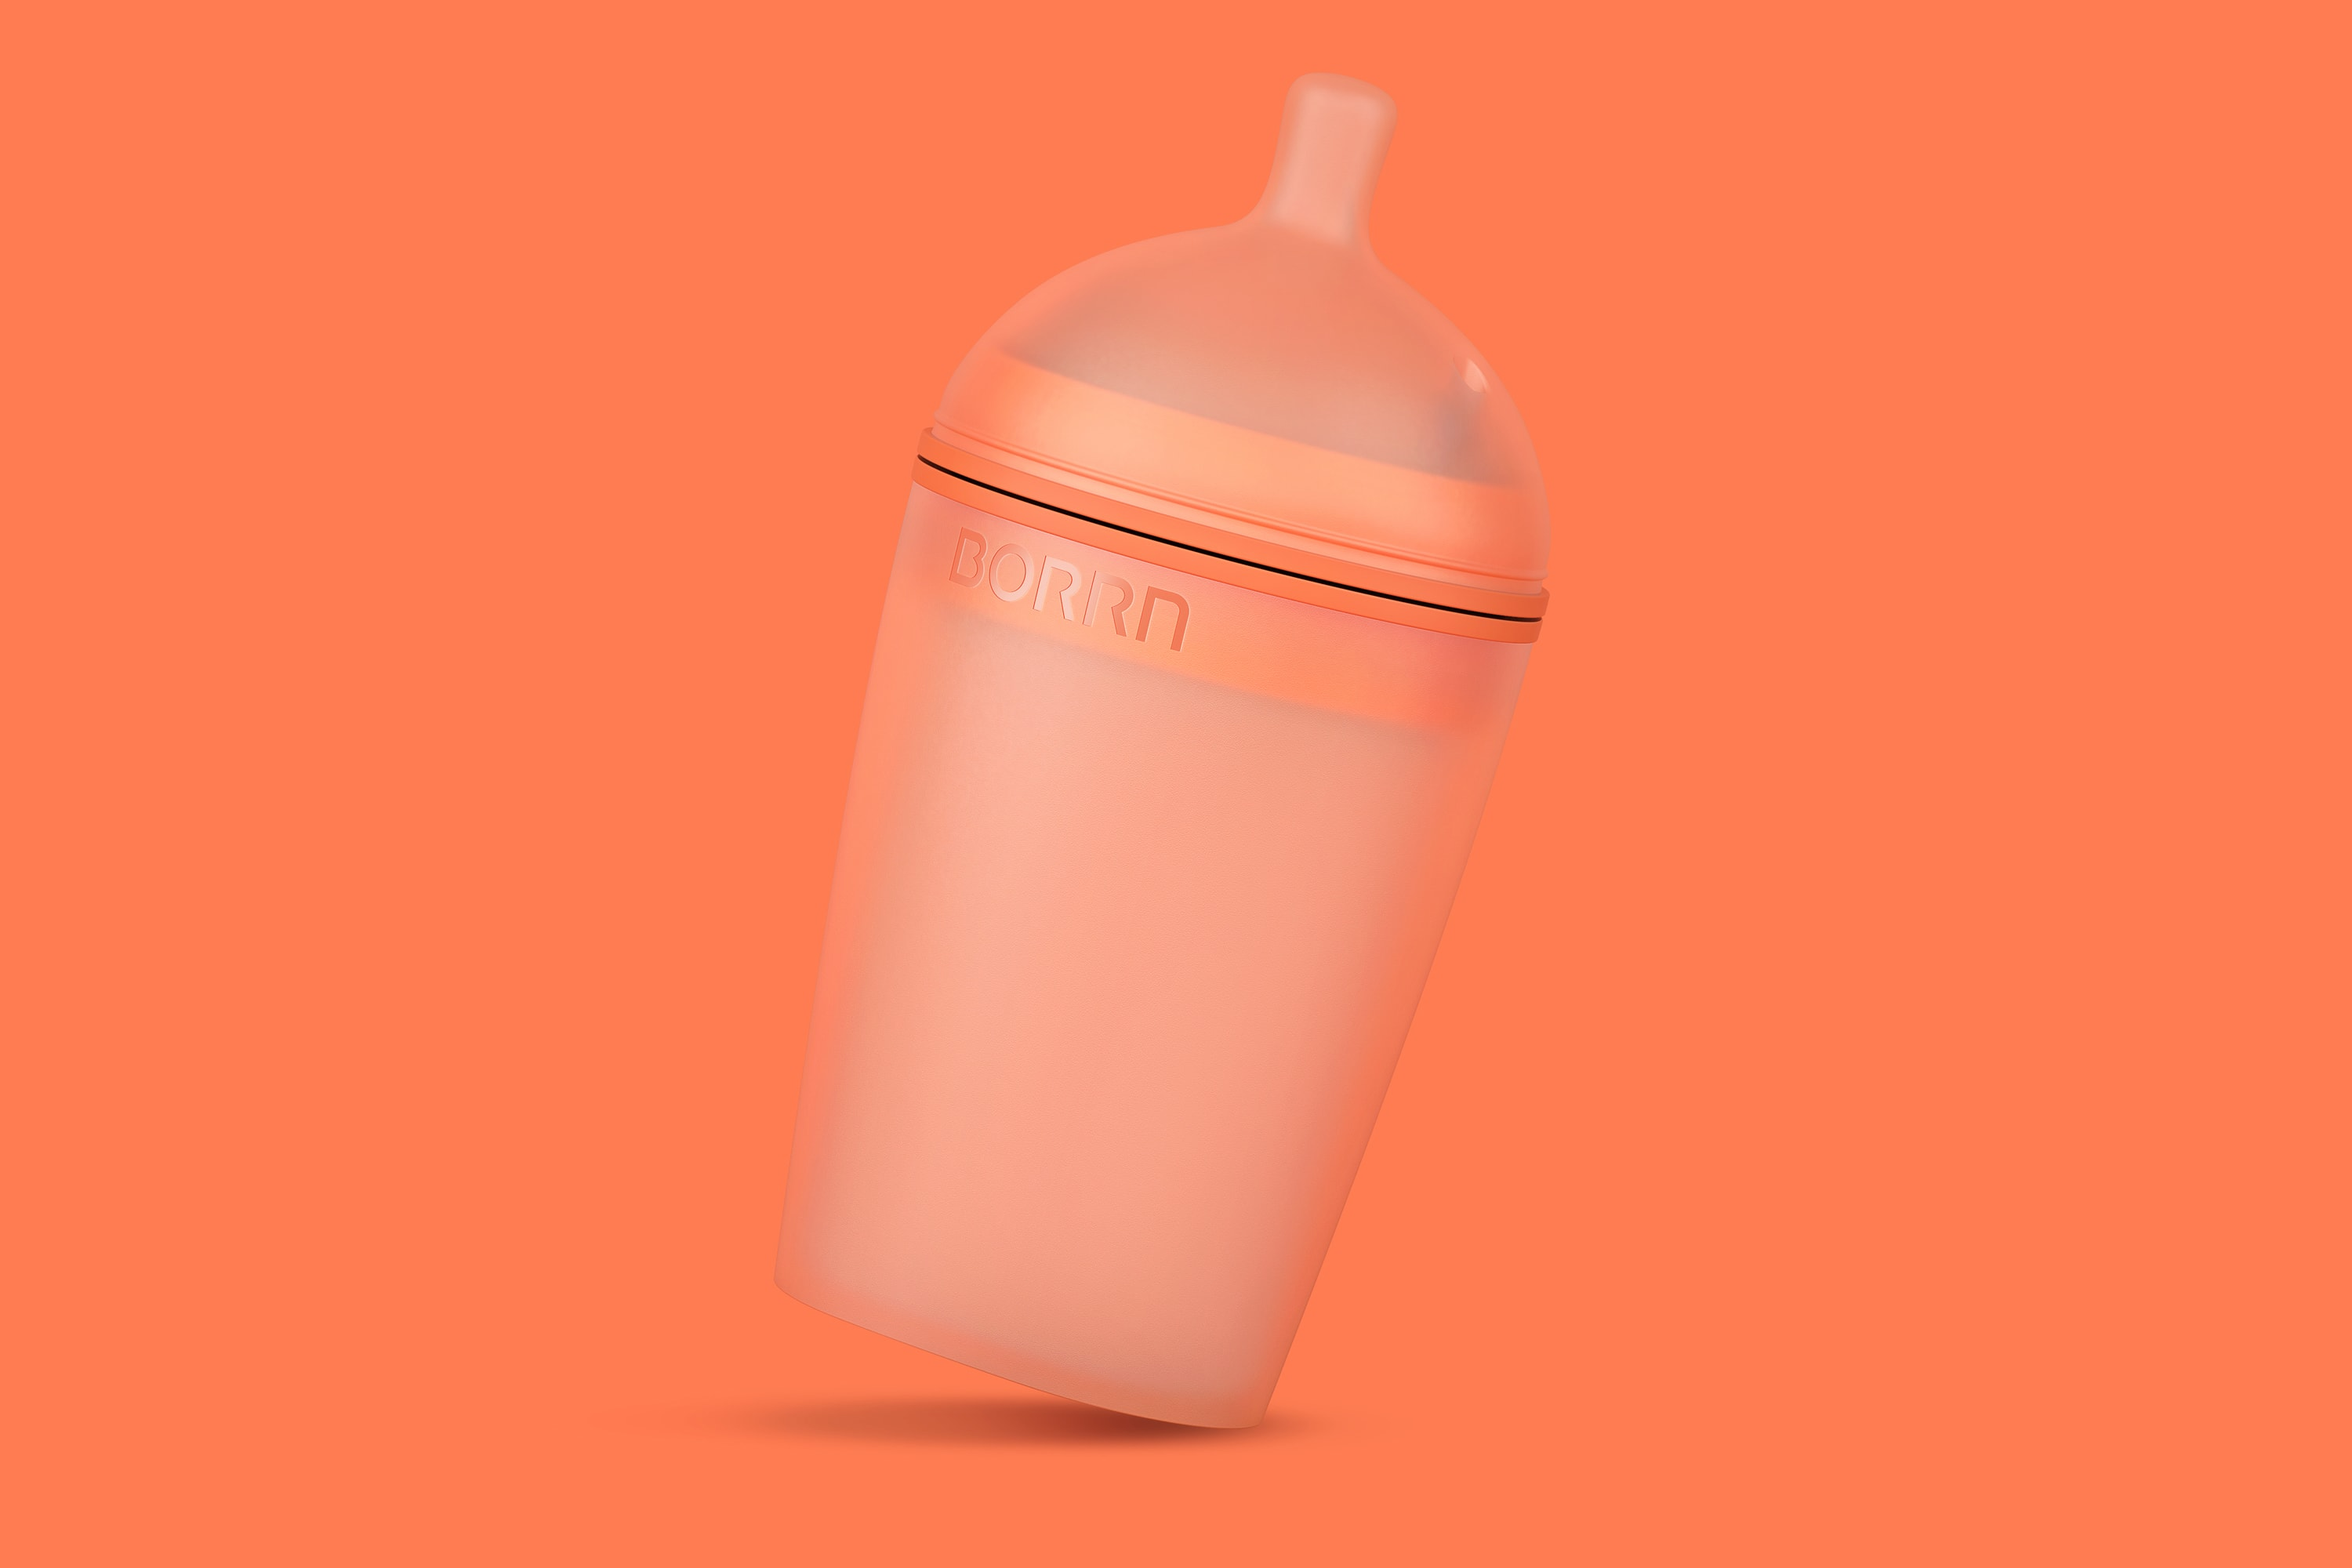 Perspective view of the large Borrn bottle, orange on an orange background.